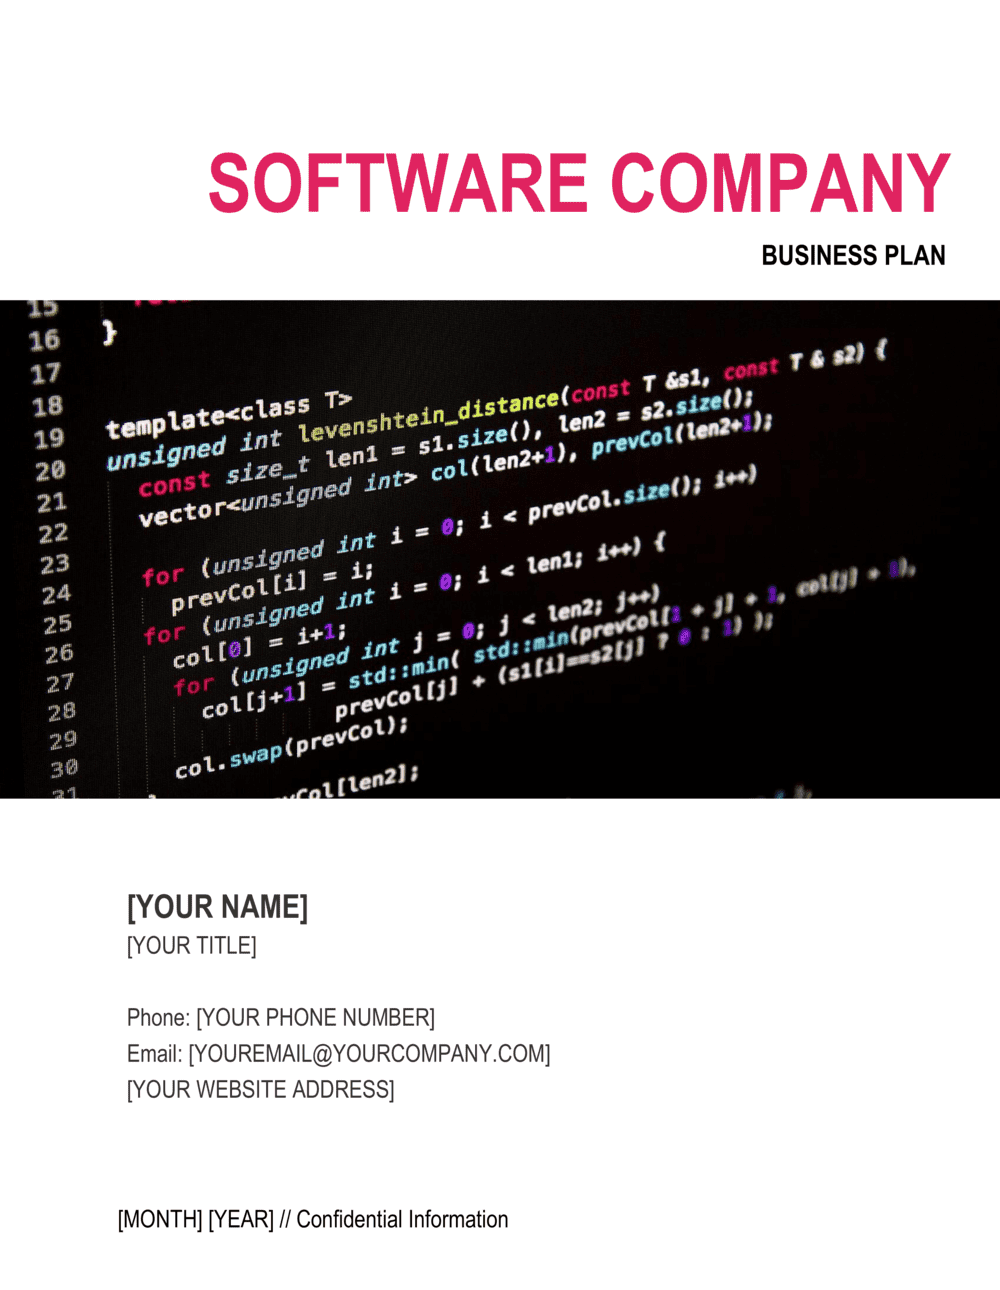 Business-in-a-Box's Software Company Business Plan Template